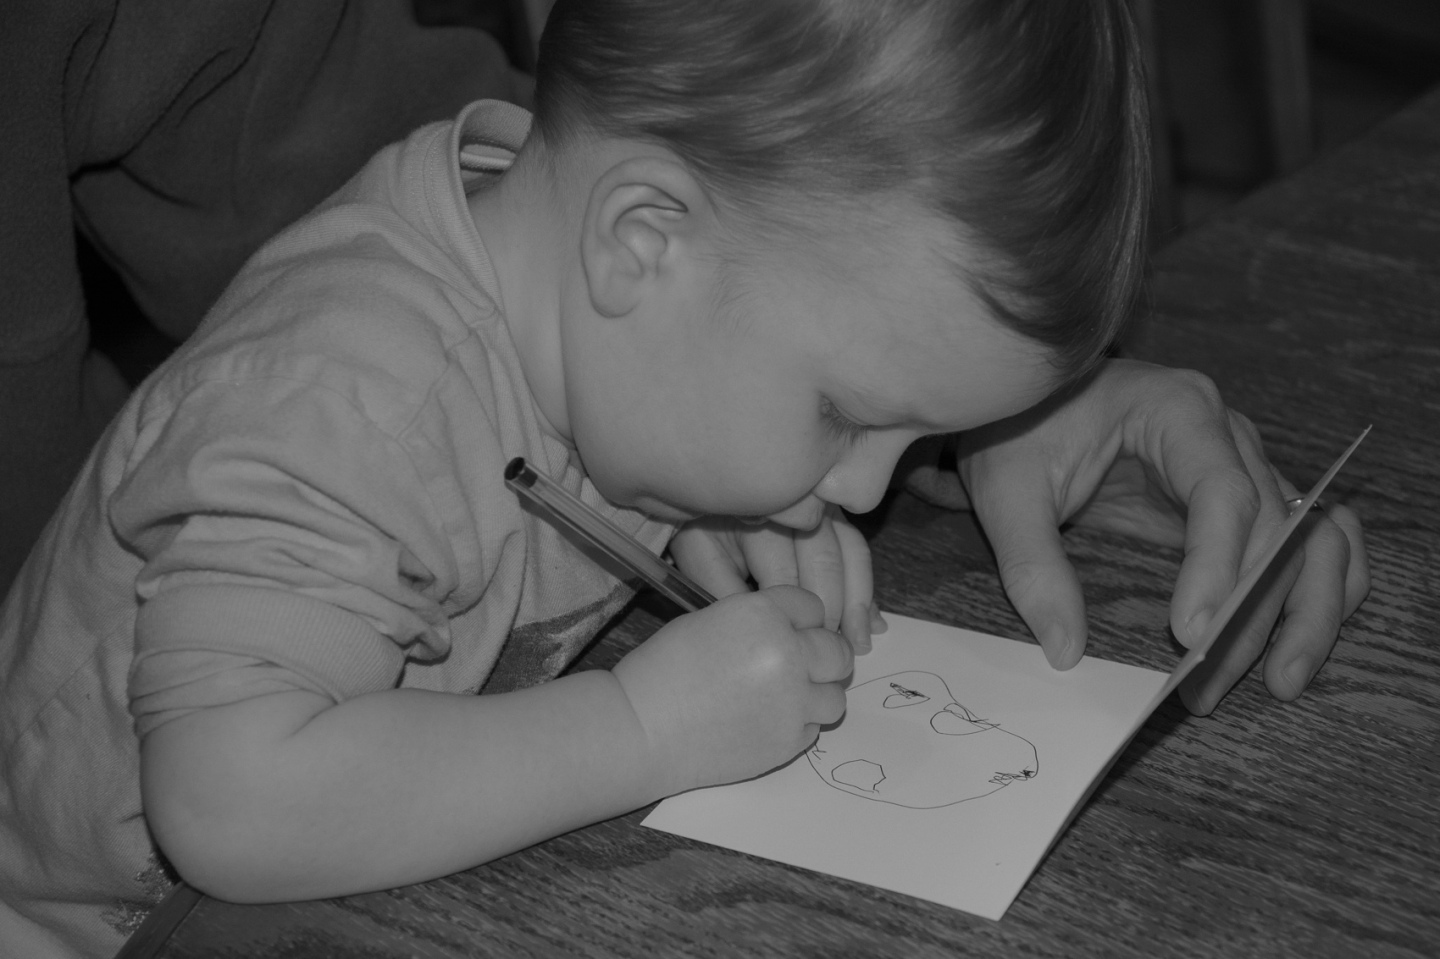 Toddler using pen to draw